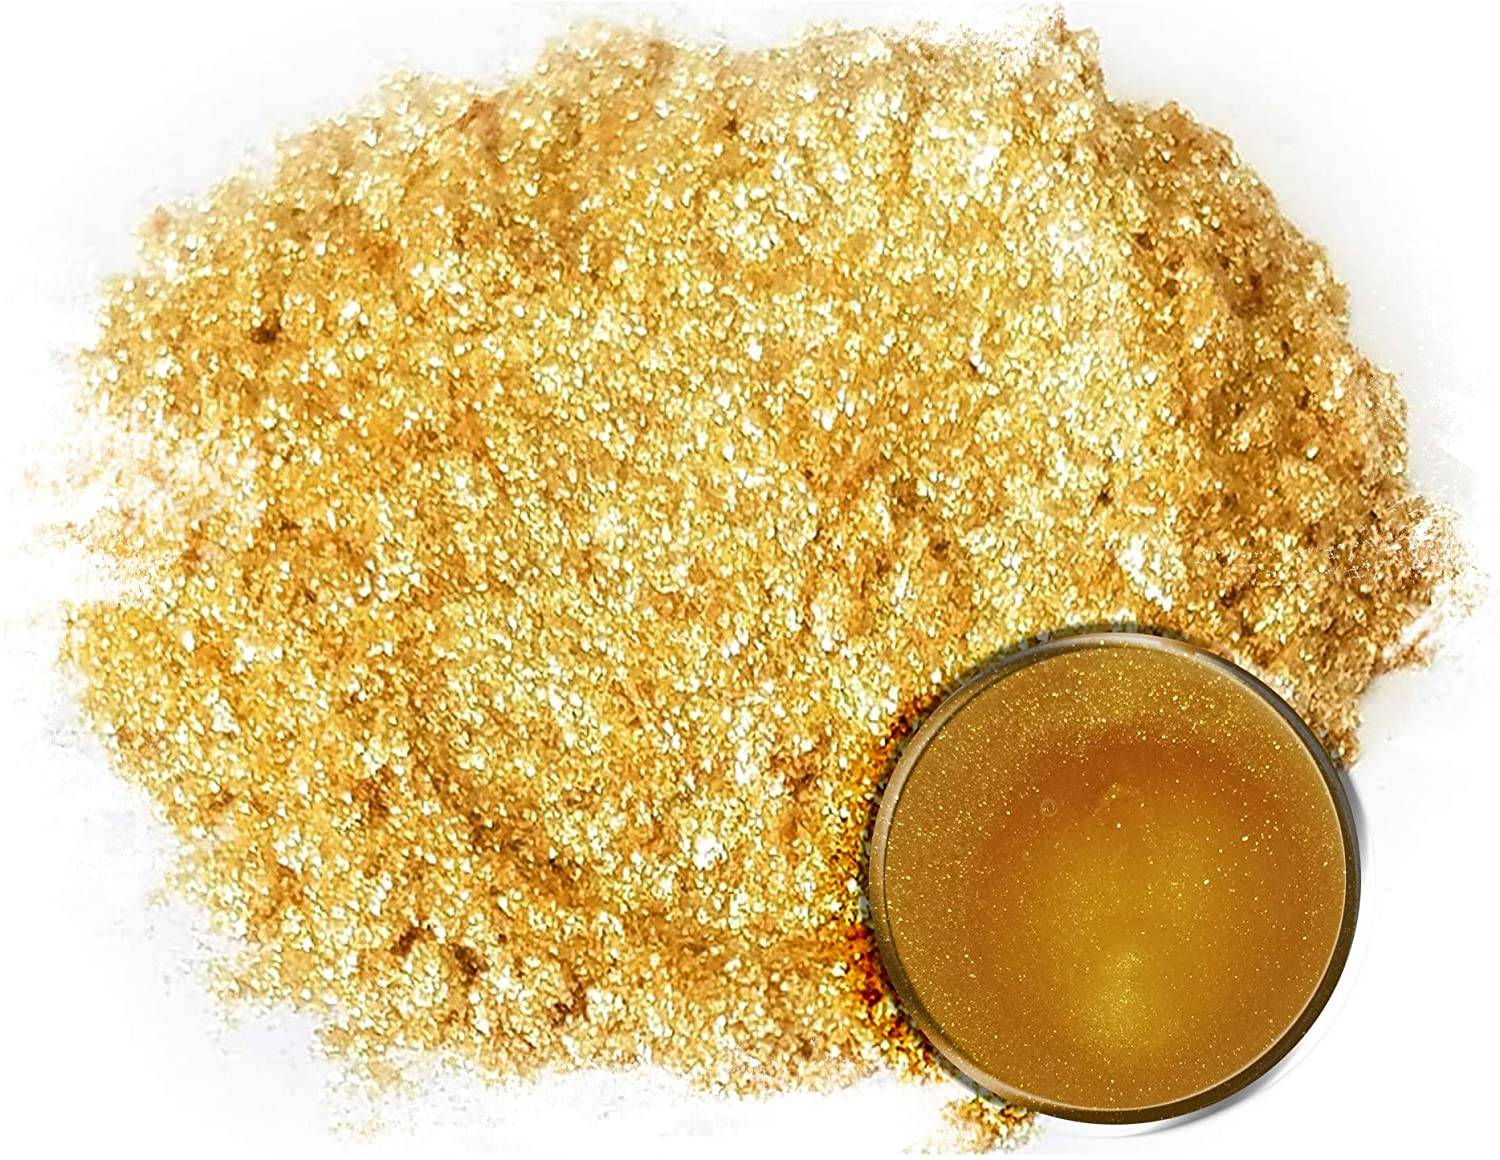 "Eye Candy Mica Powder Pigment ""Krysanthe Gold"" (50g) Multipurpose DIY Arts and Crafts Additive 